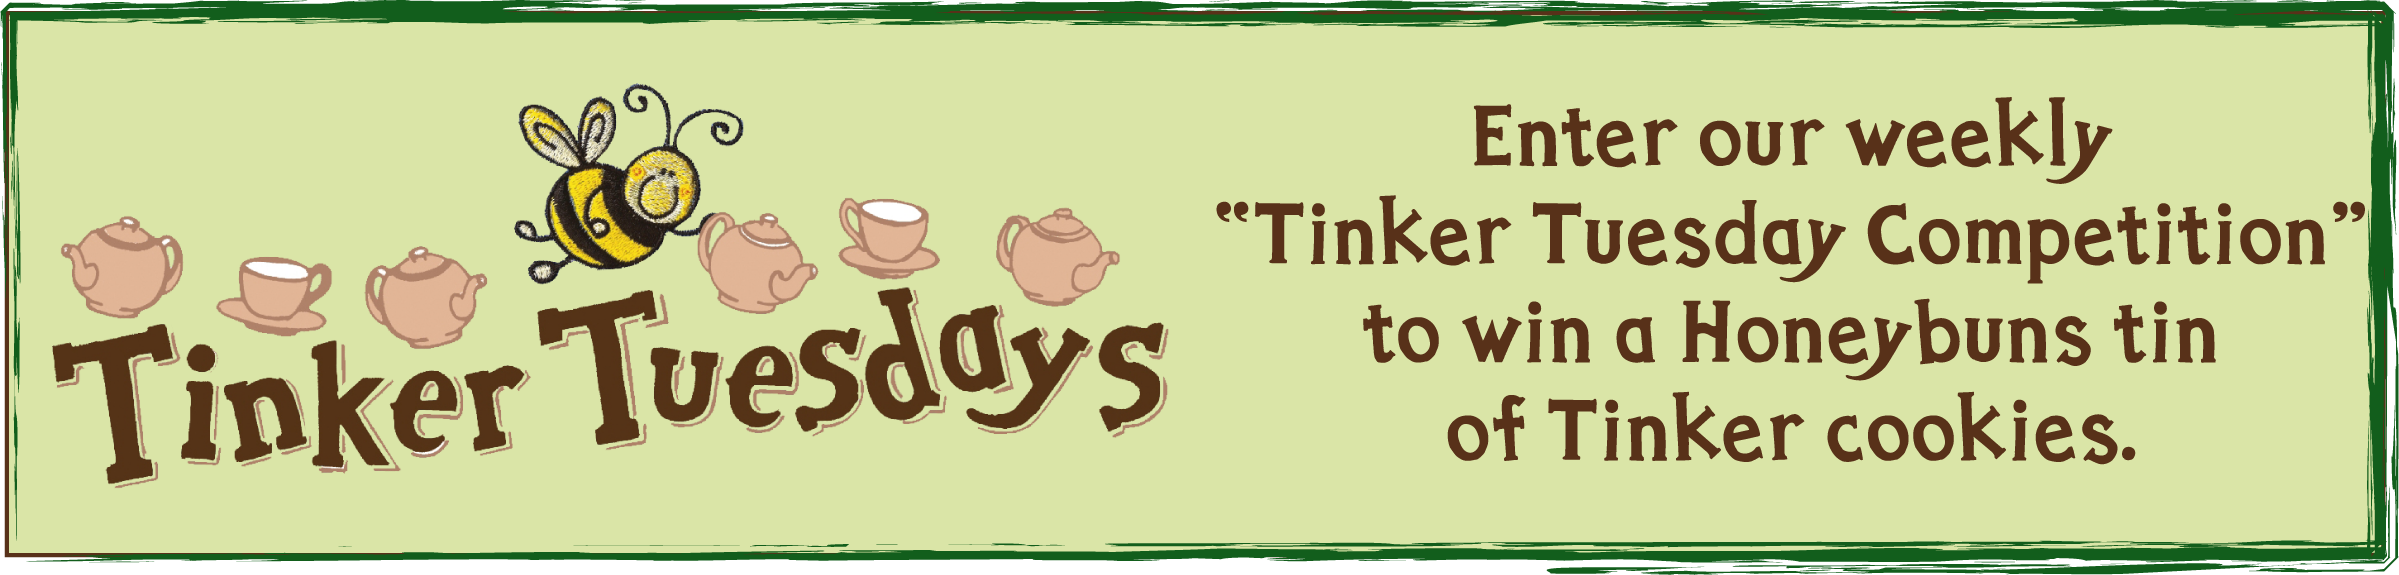 Tinker Tuesday competition